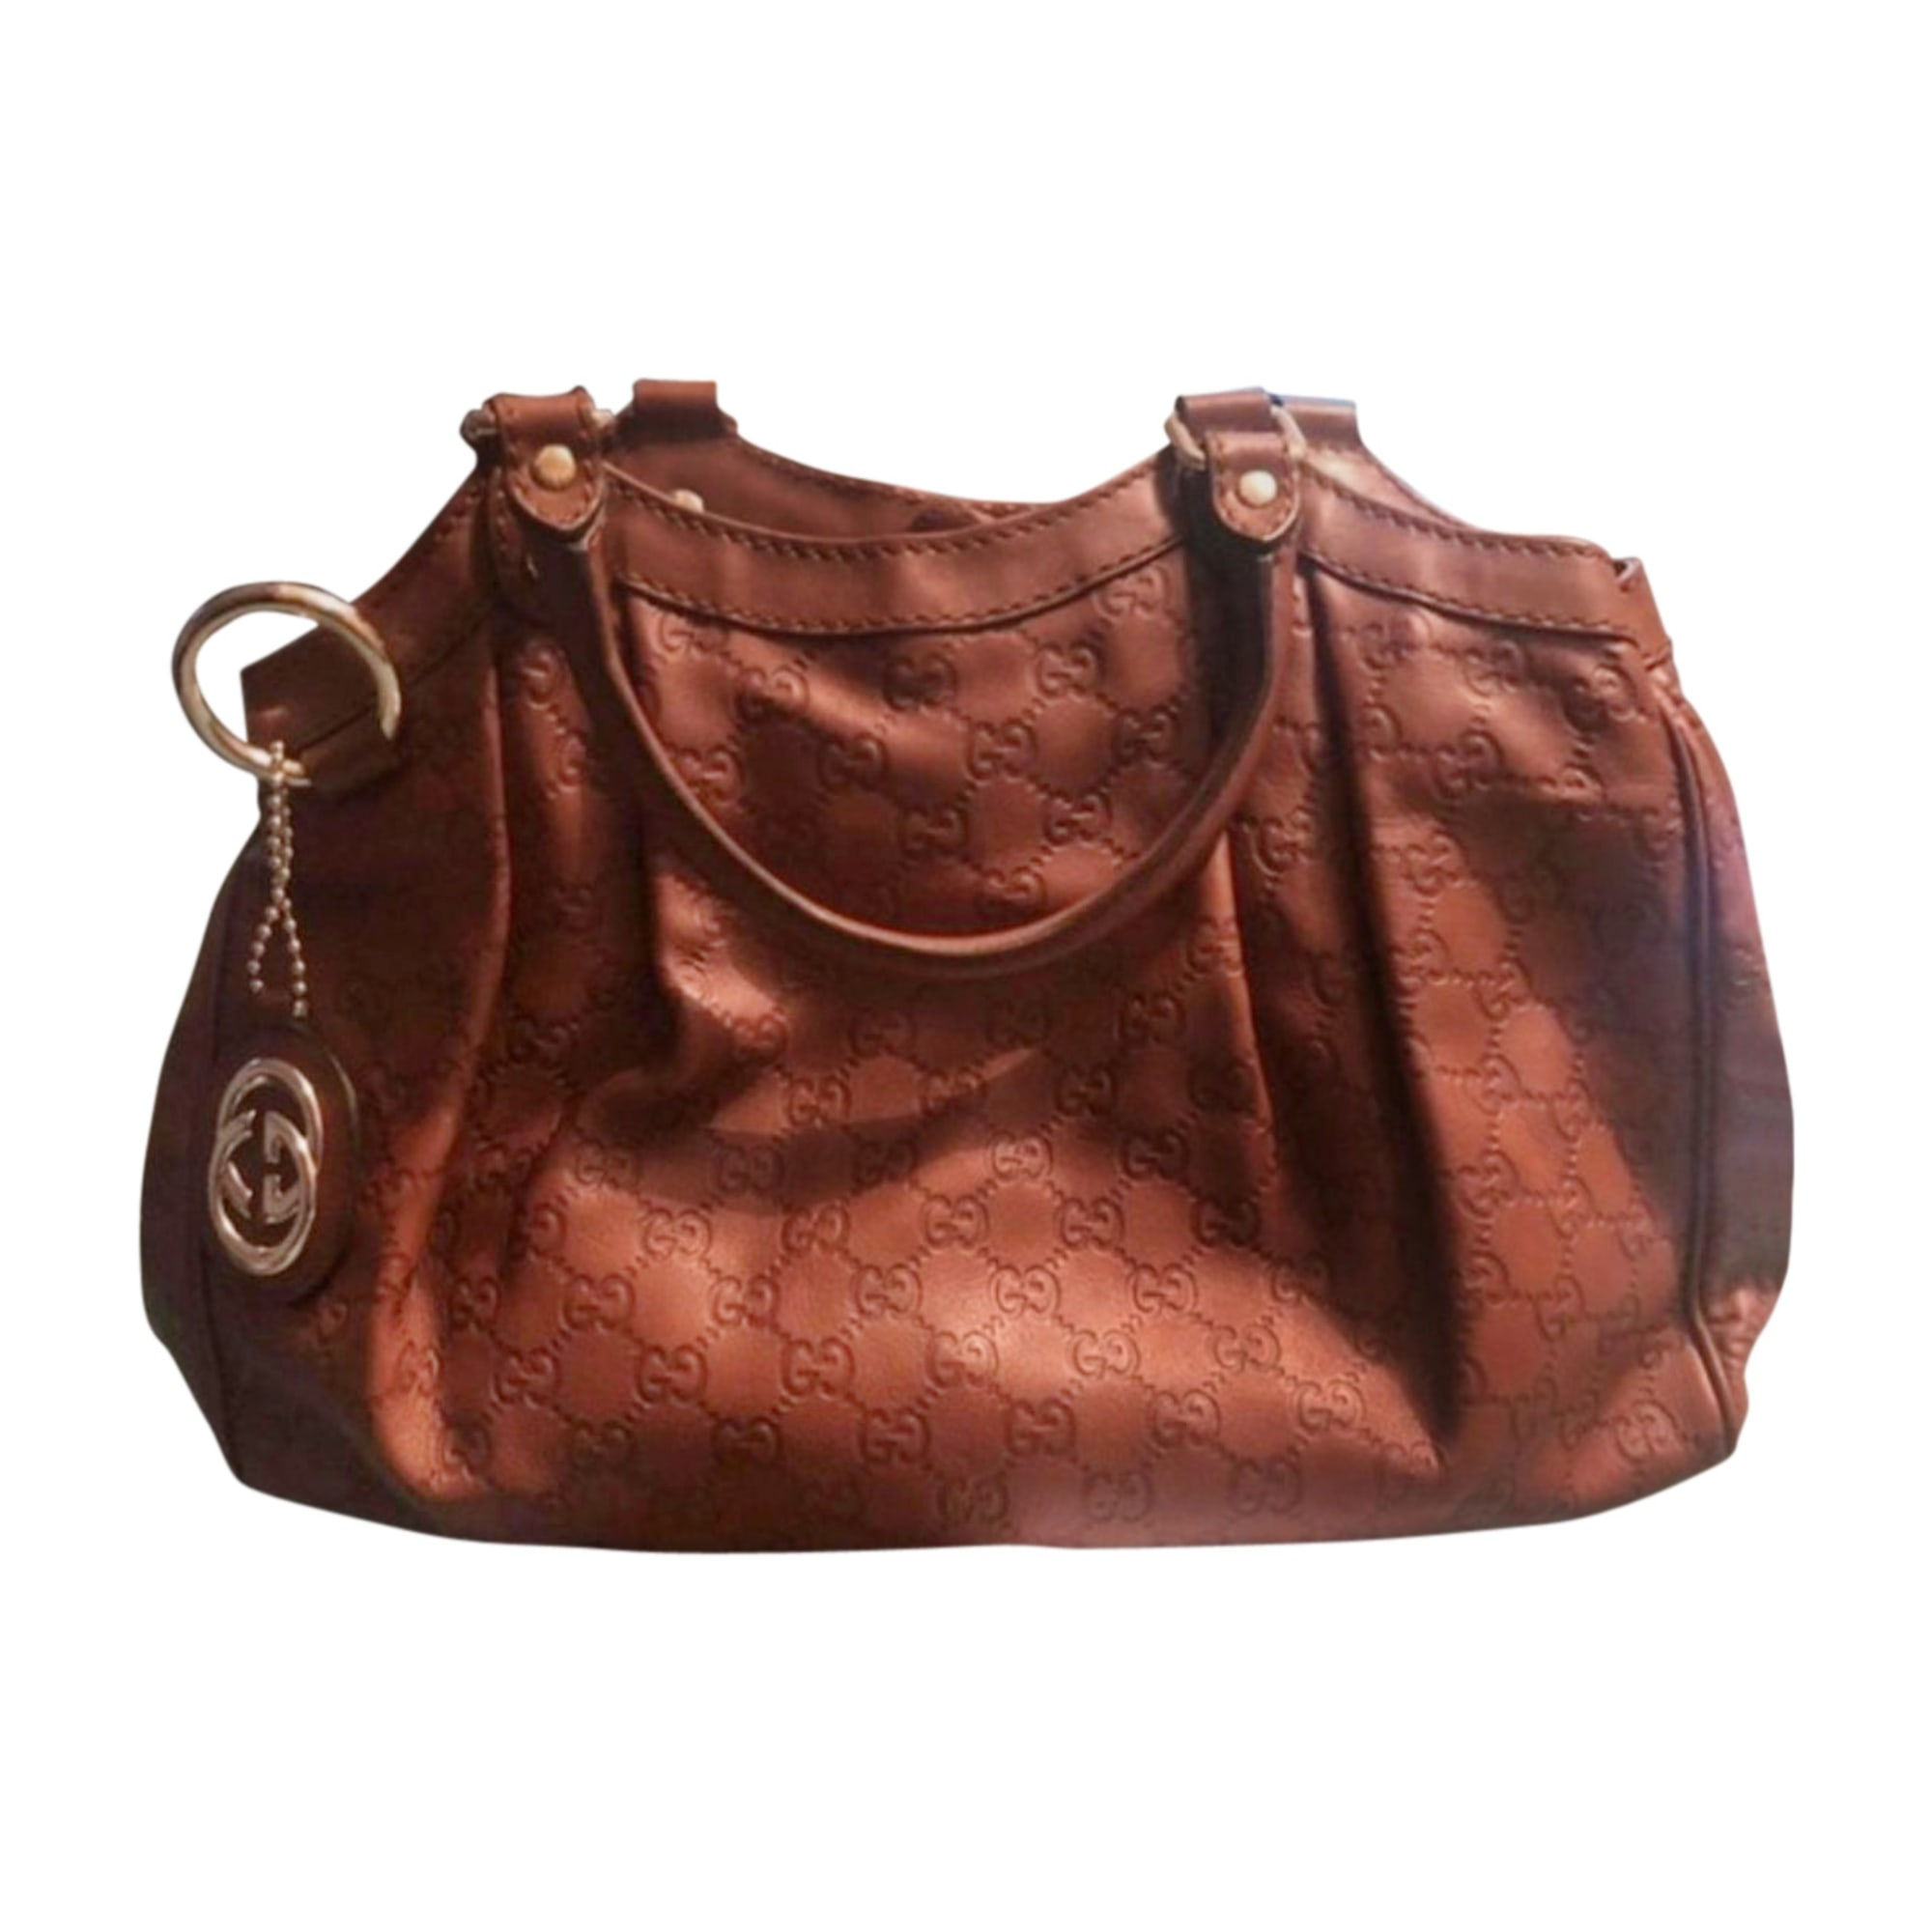 Sac à main en cuir GUCCI Marron